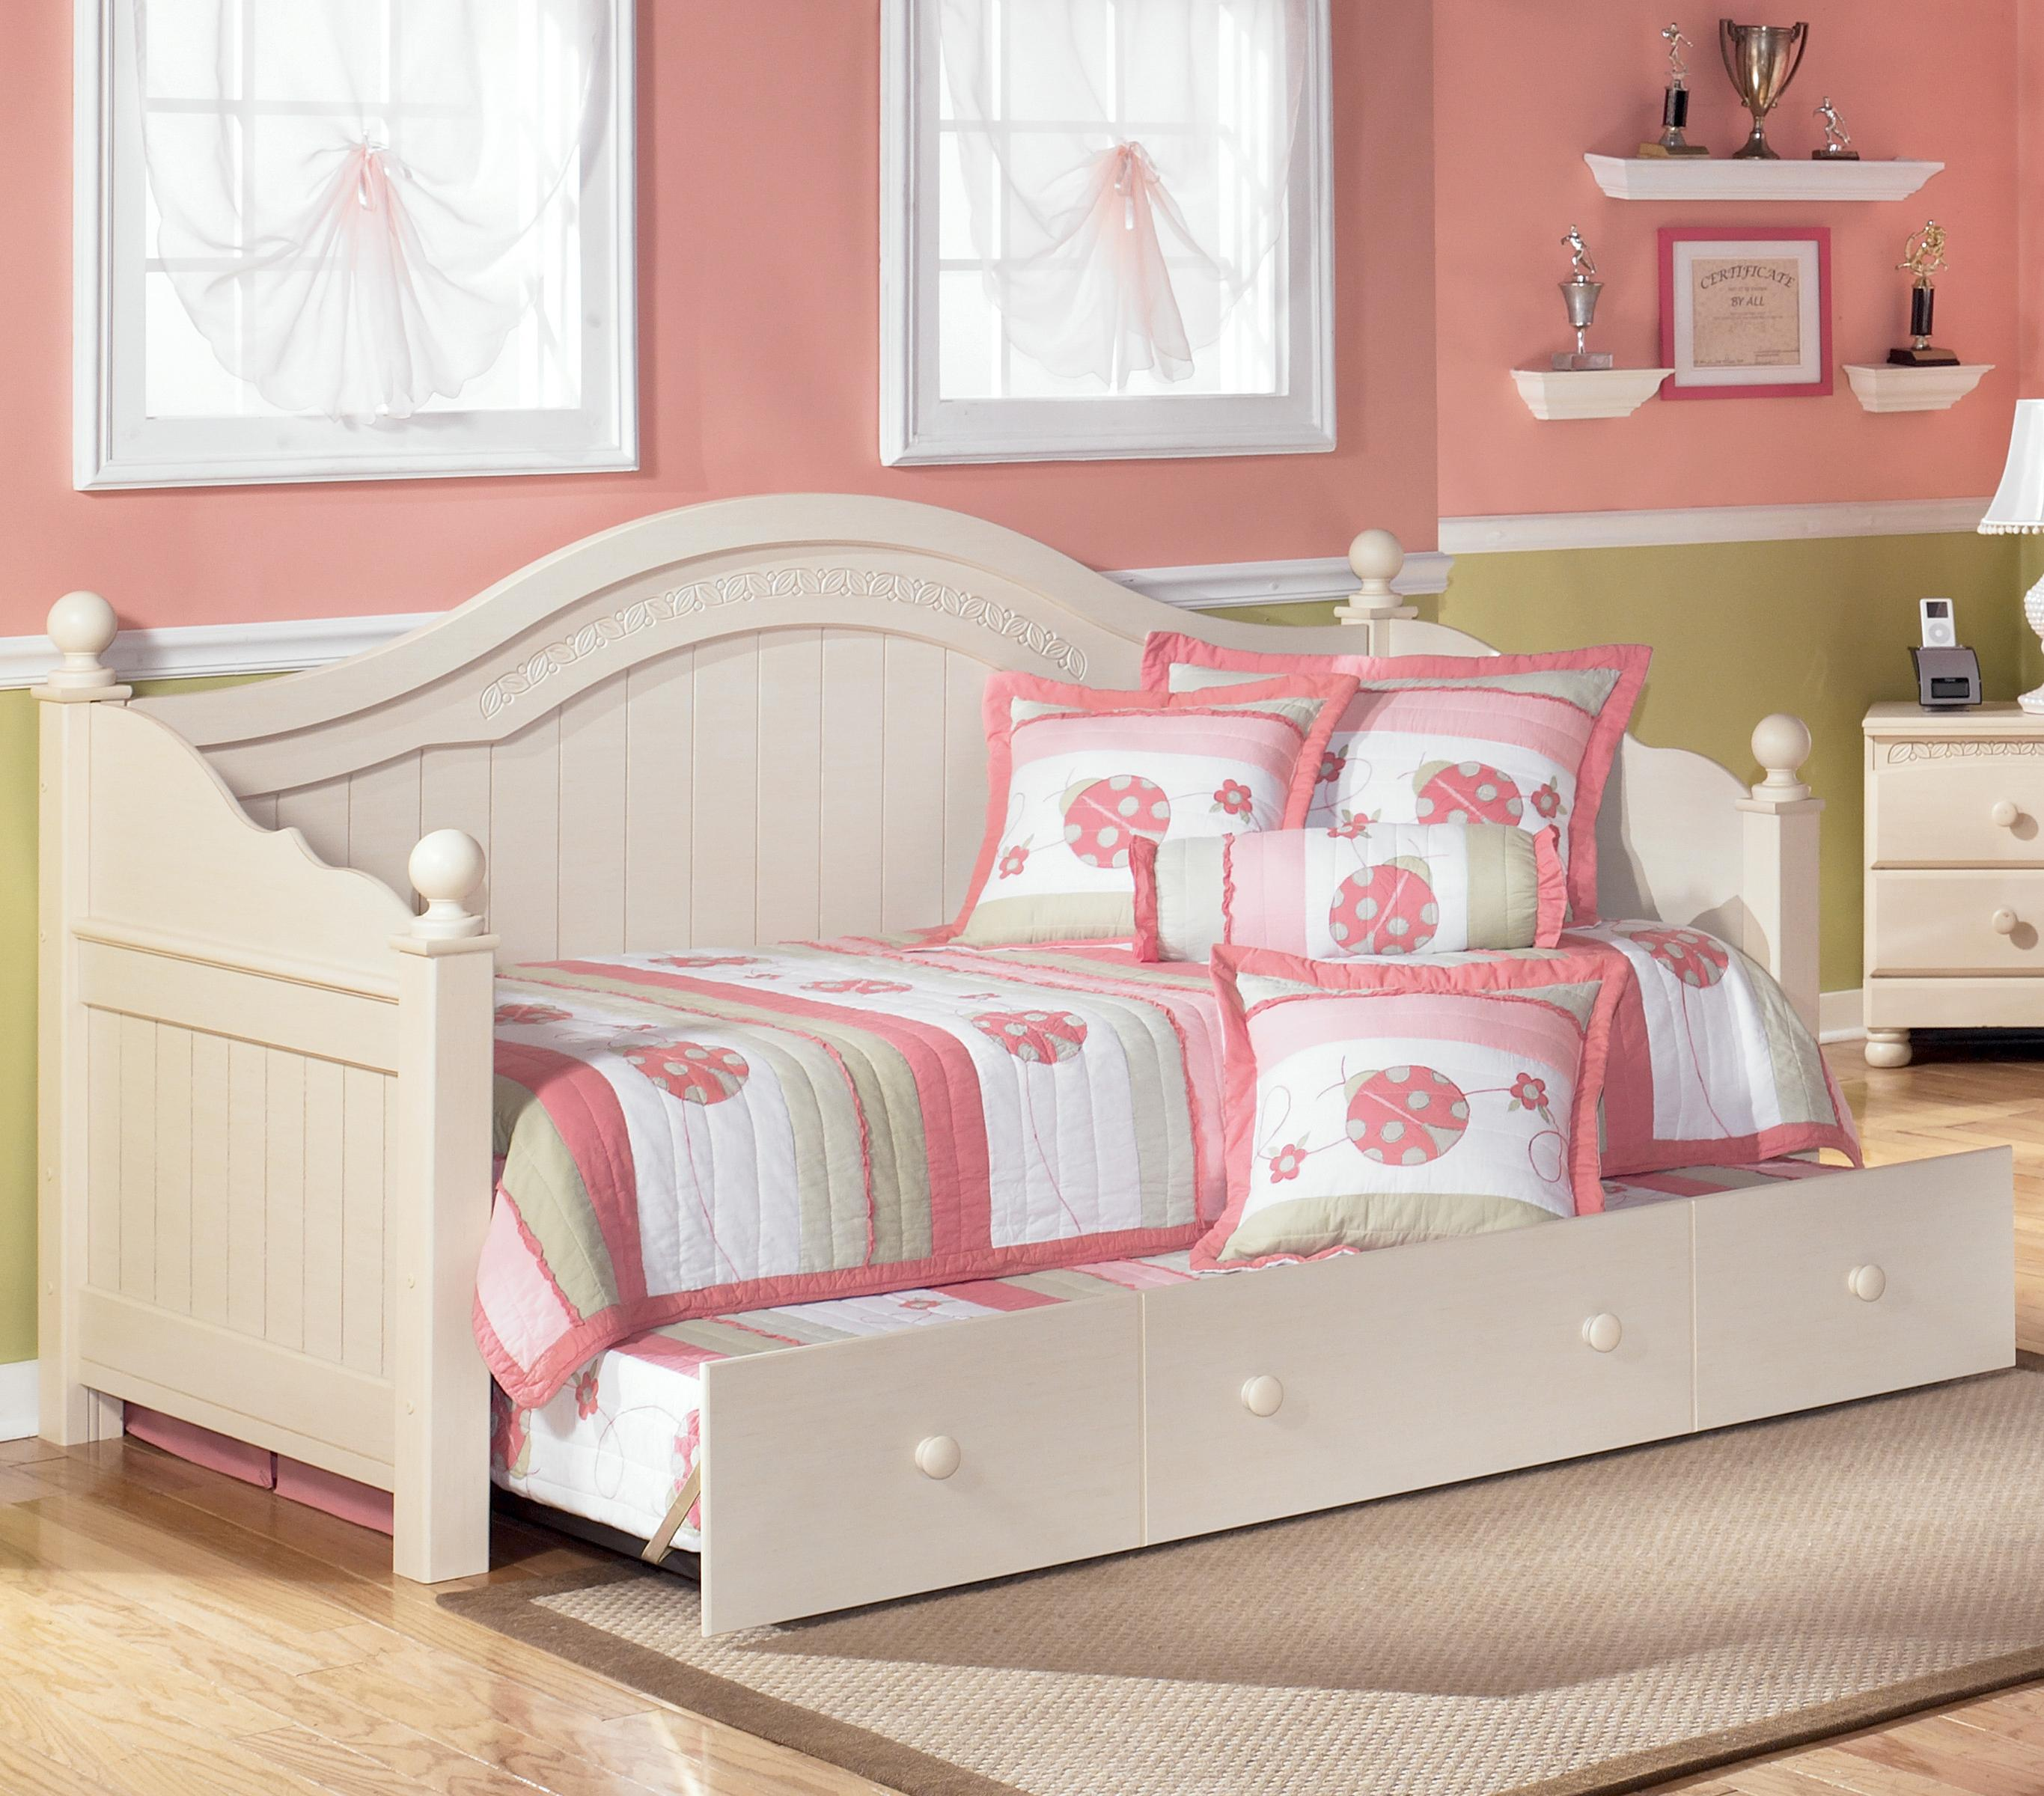 from bunk bedroom cottage youtube retreat watch set by design signature collection ashley